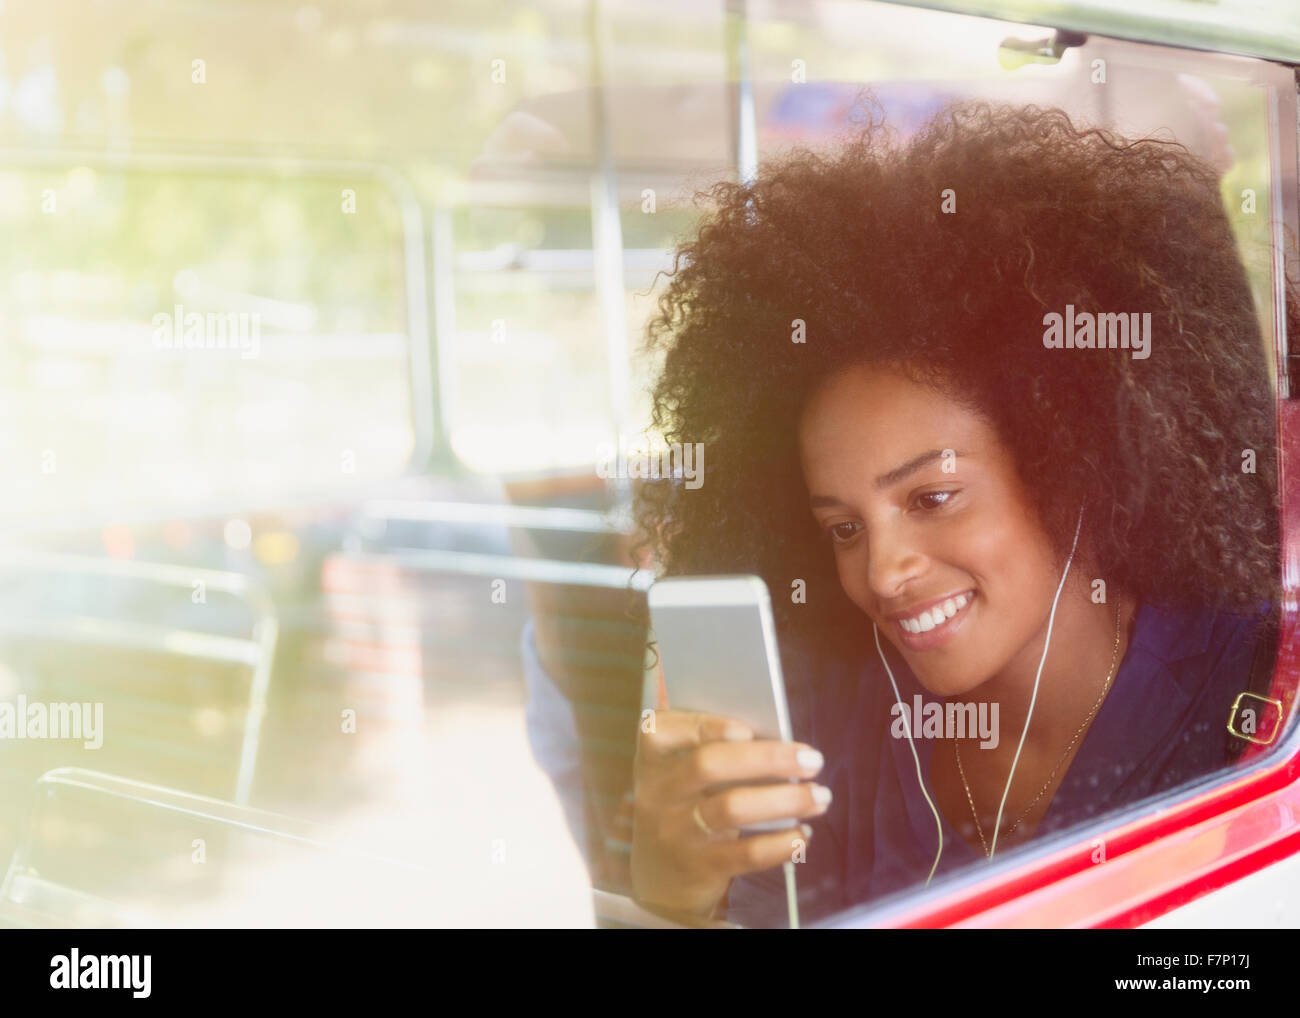 Smiling woman with afro listening to music with headphones and mp3 player on bus - Stock Image